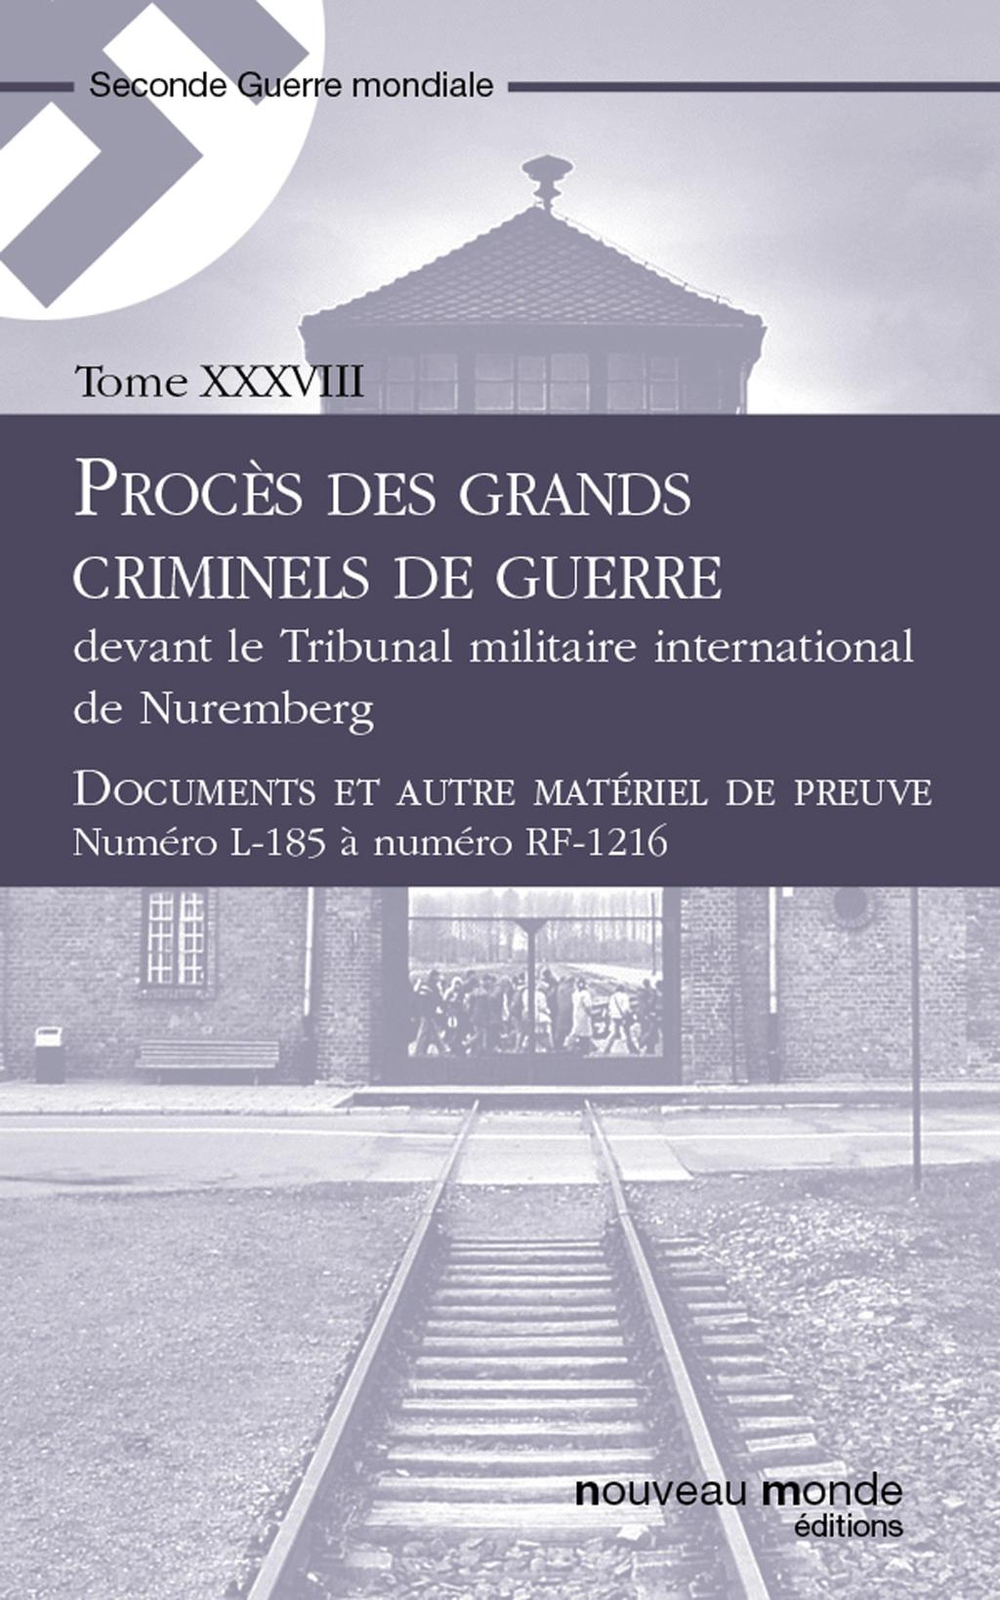 Procès des grands criminels de guerre devant le Tribunal militaire international de Nuremberg, Tome 38